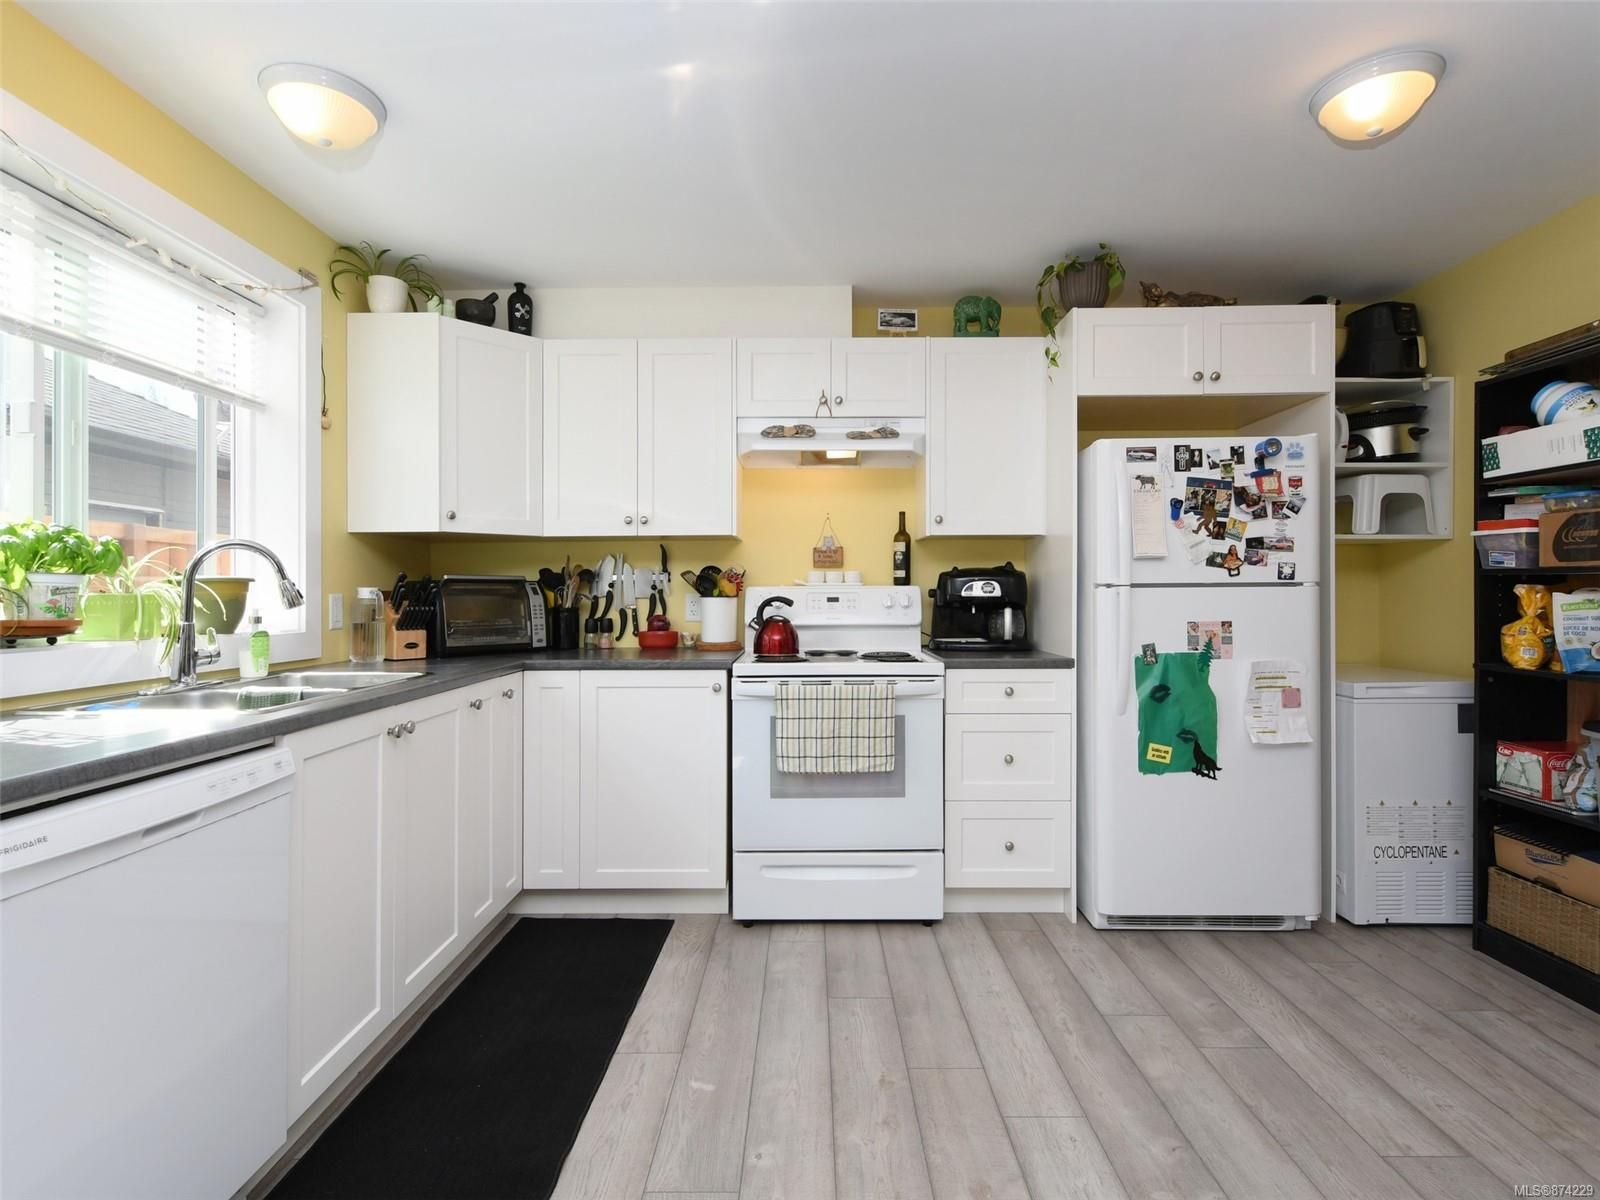 Photo 16: Photos: 1921 Tominny Rd in : Sk Sooke Vill Core House for sale (Sooke)  : MLS®# 874229